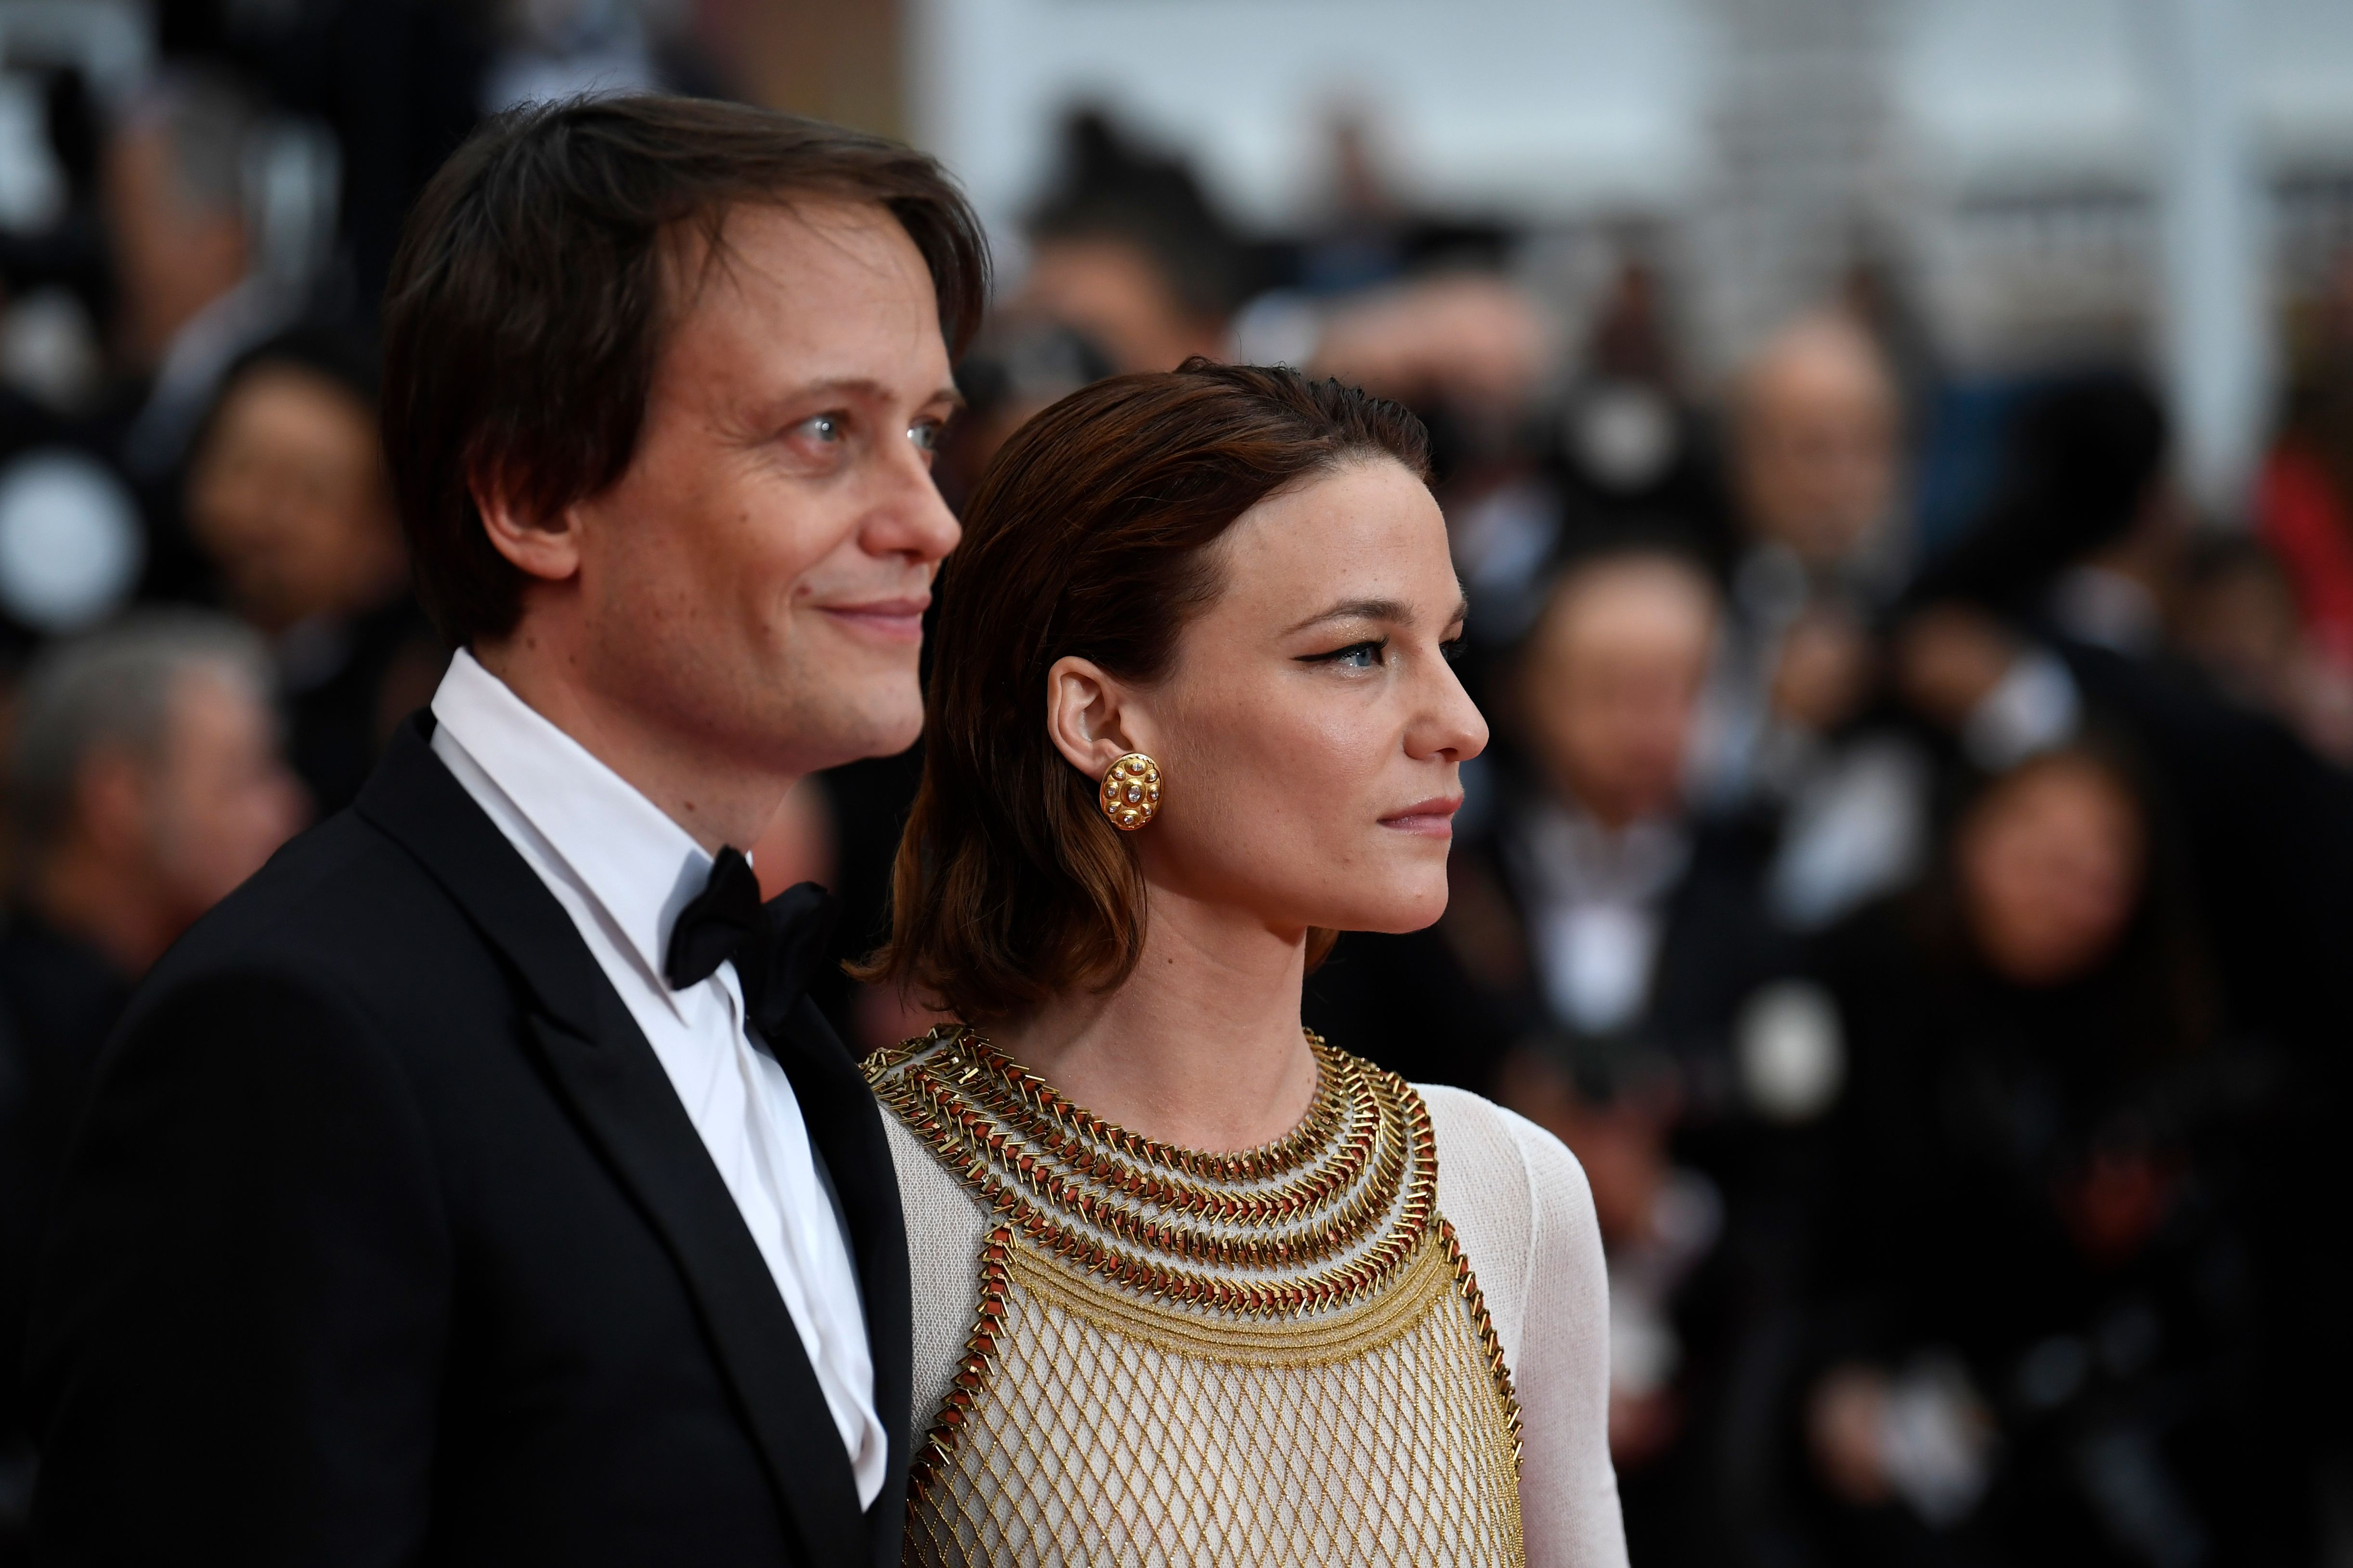 German actor August Diehl and Austrian actress Valerie Pachner arrive for the screening of the film  A Hidden Life  at the 72nd edition of the Cannes Film Festival on May 19, 2019.